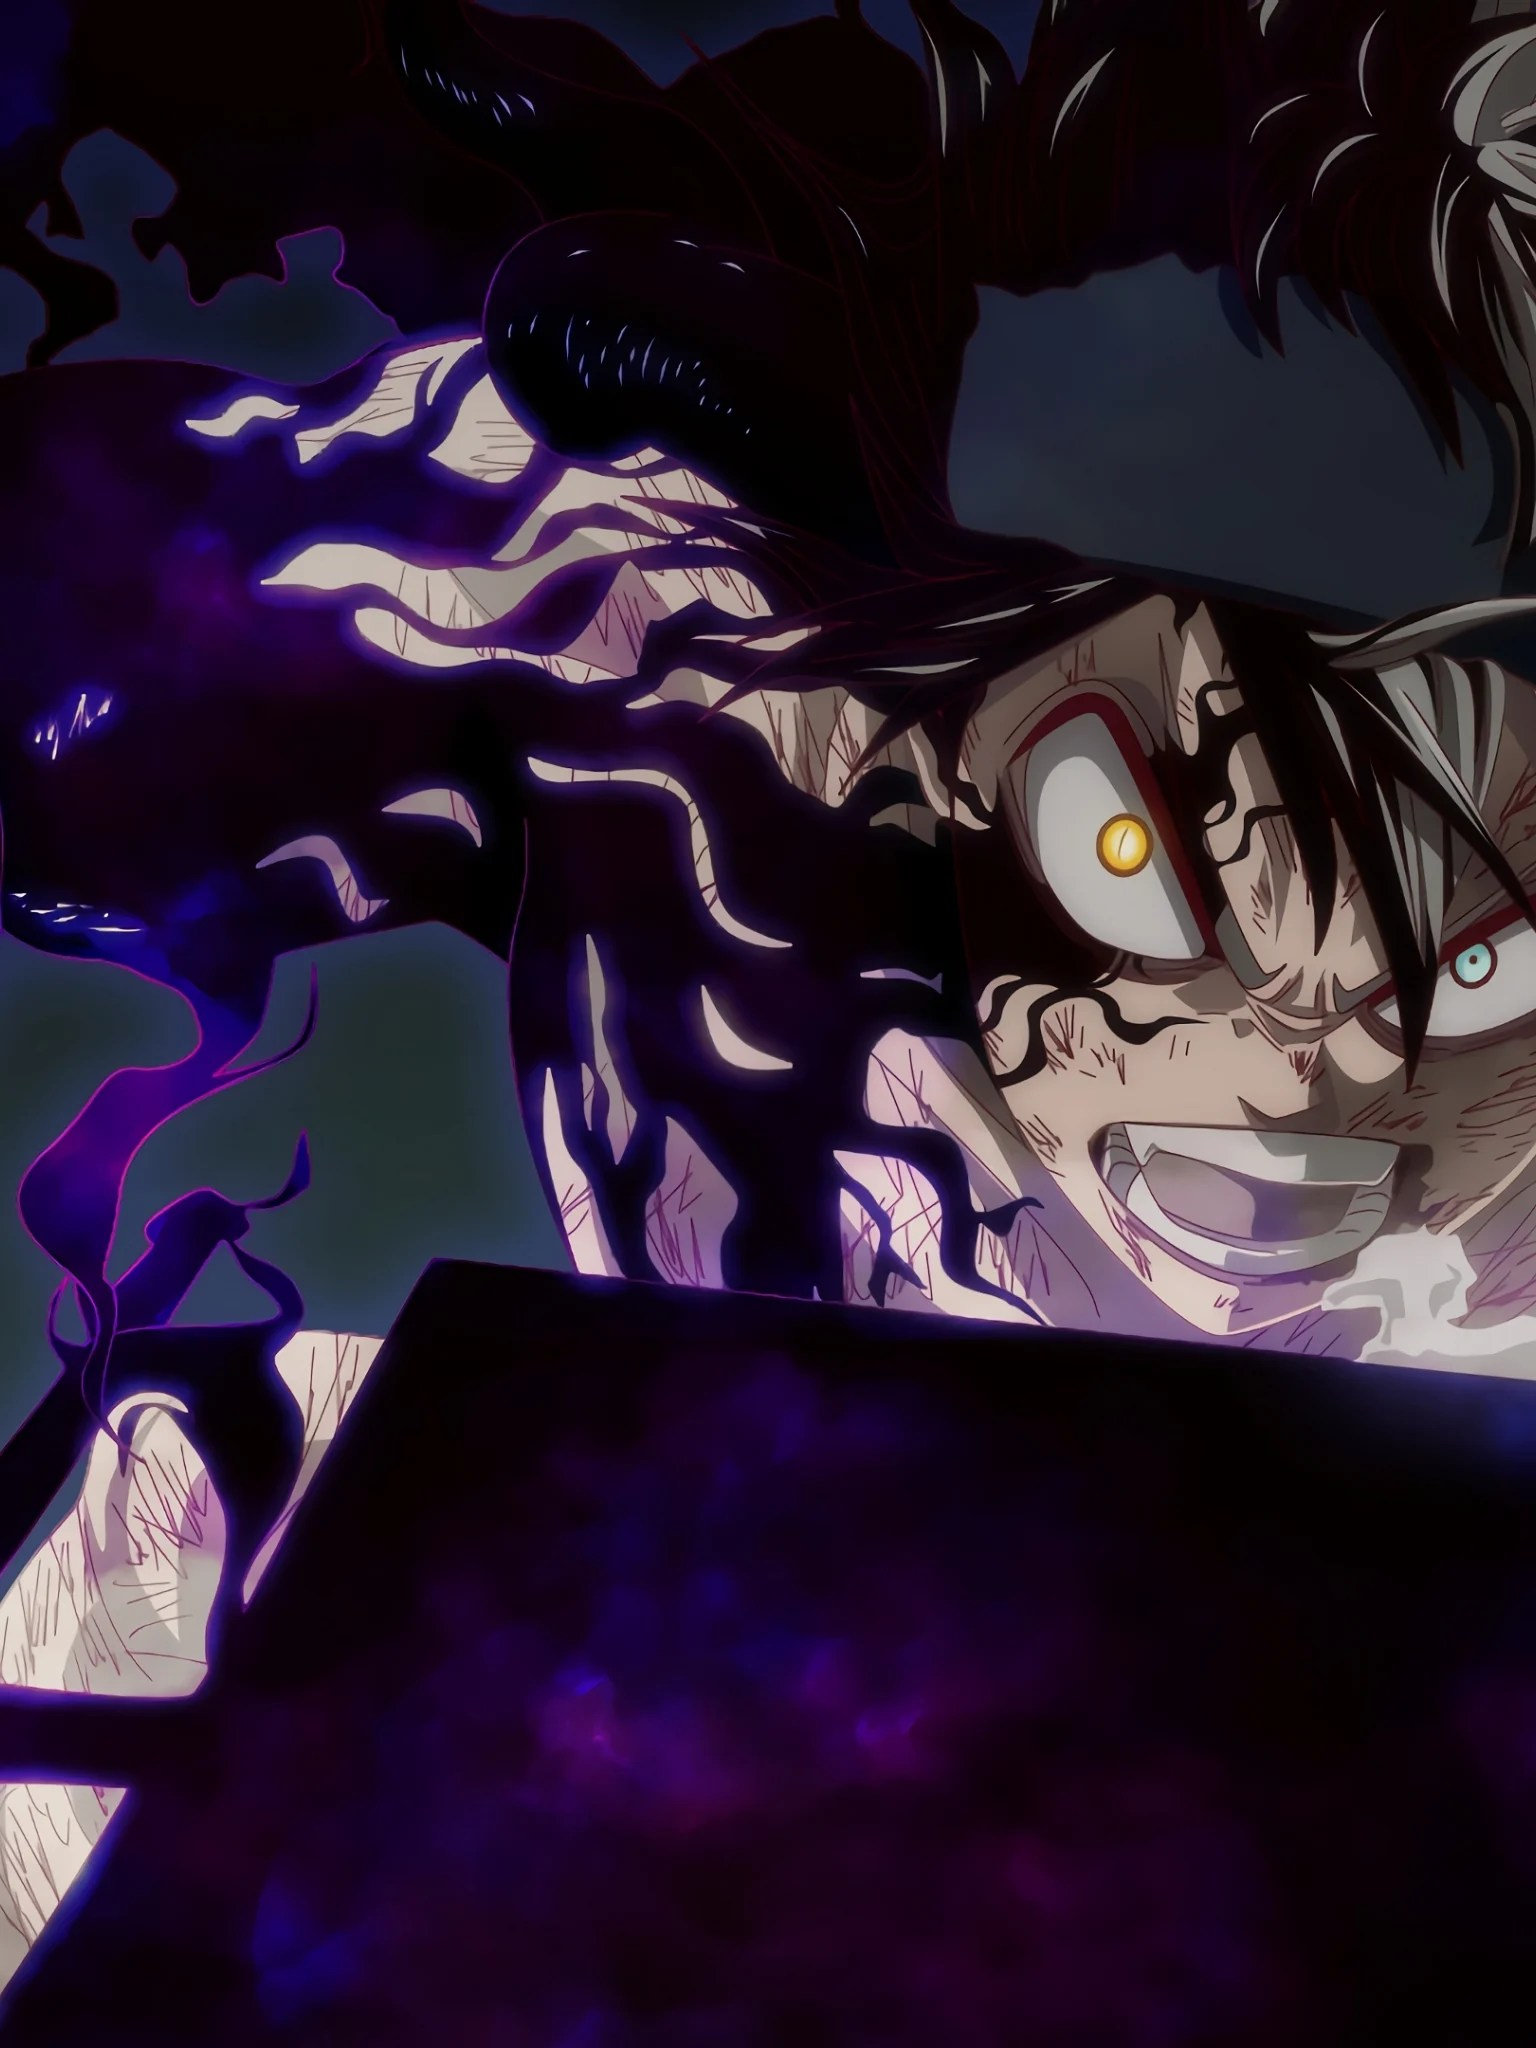 Are you a black clover anime (the whole clover) biggest fan? Phone Asta Black Clover Wallpapers - Wallpaper Cave